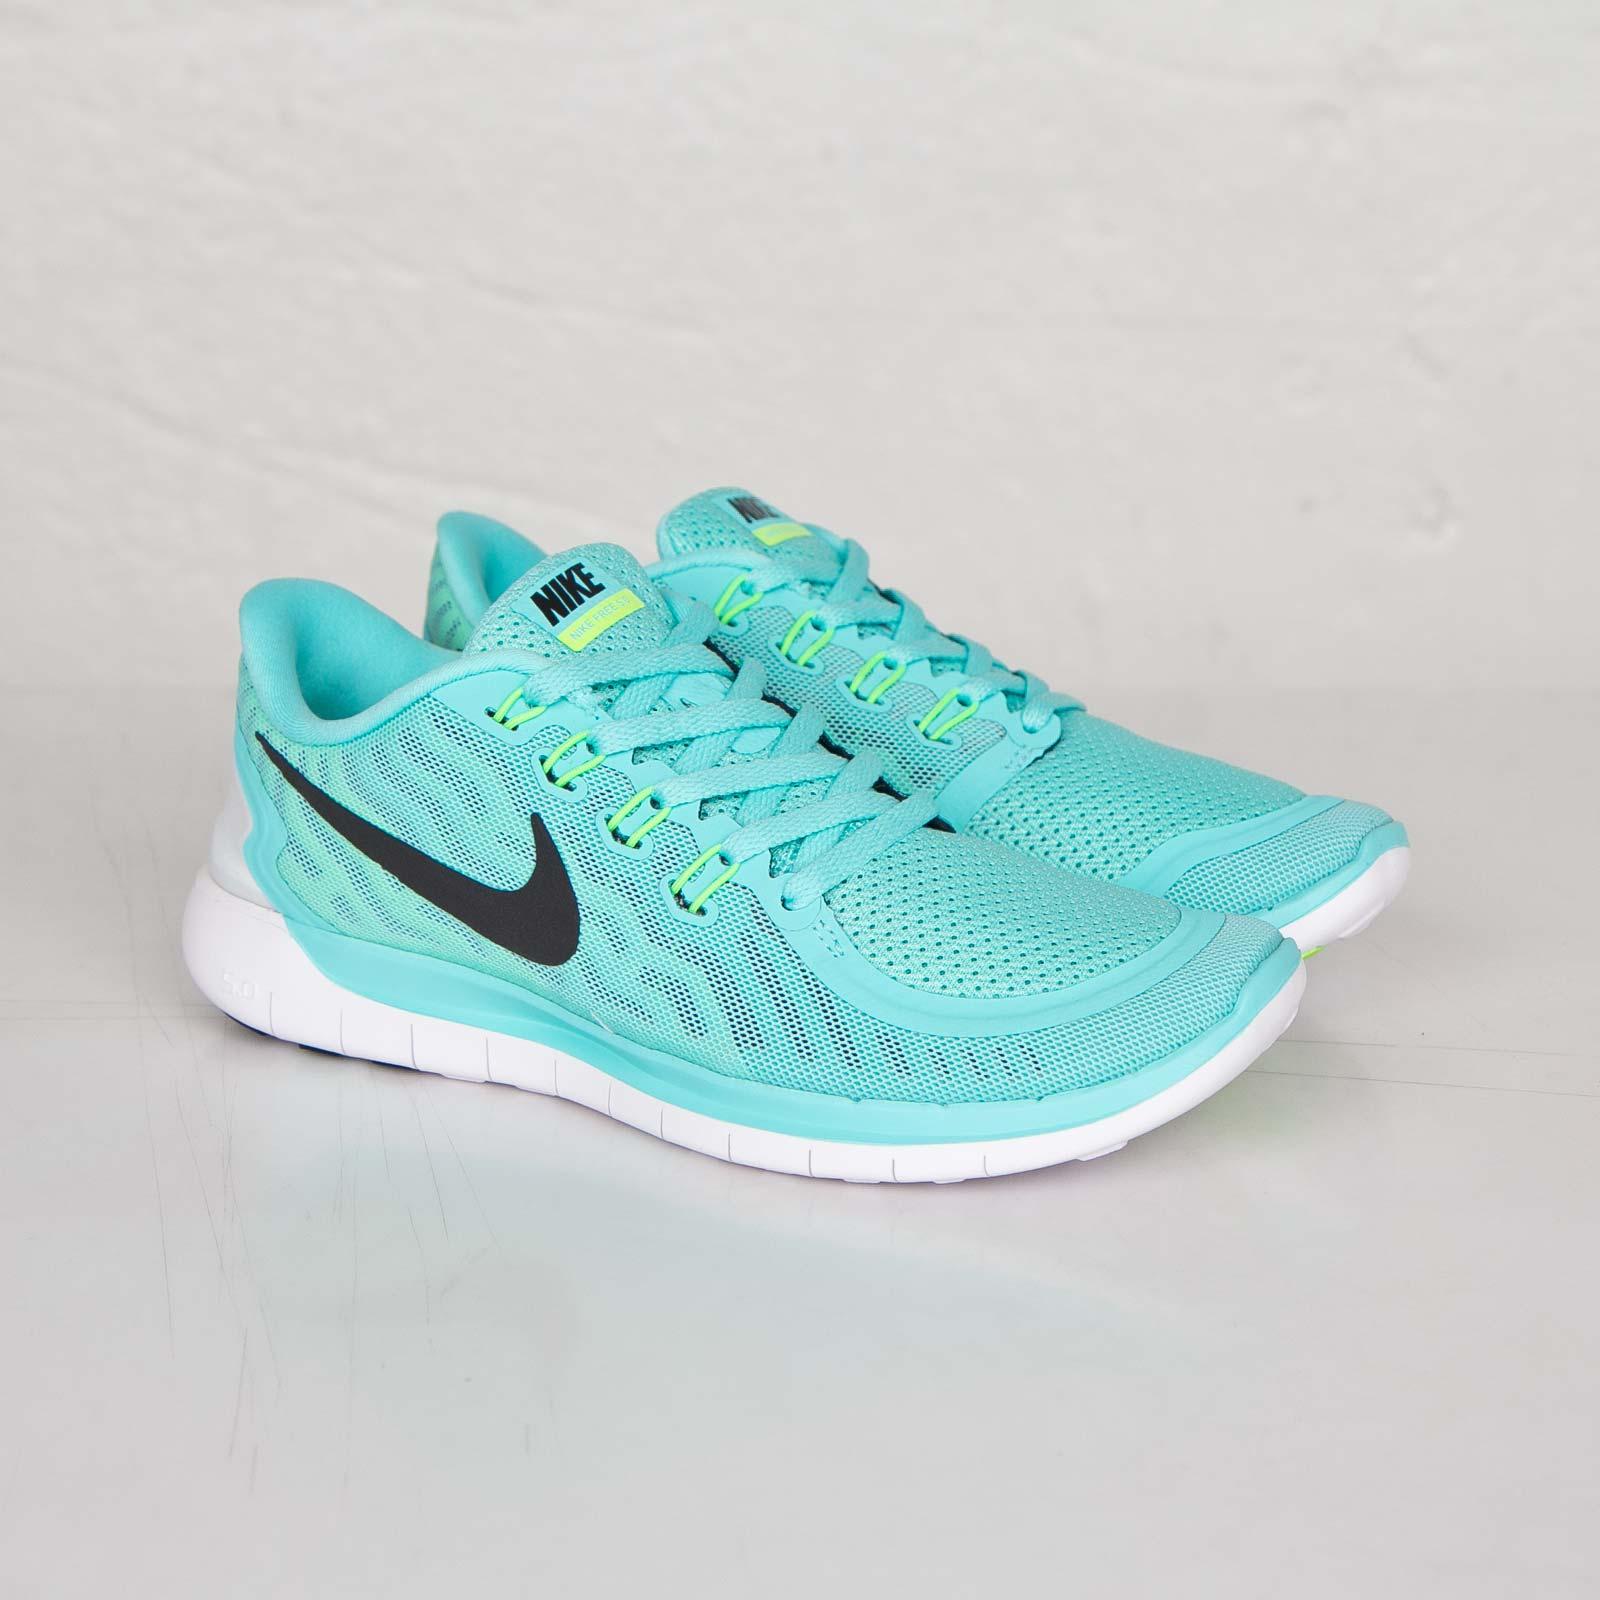 cheap for discount aad01 d44bc Nike Wmns Free 5.0 - 724383-400 - Sneakersnstuff | sneakers ...